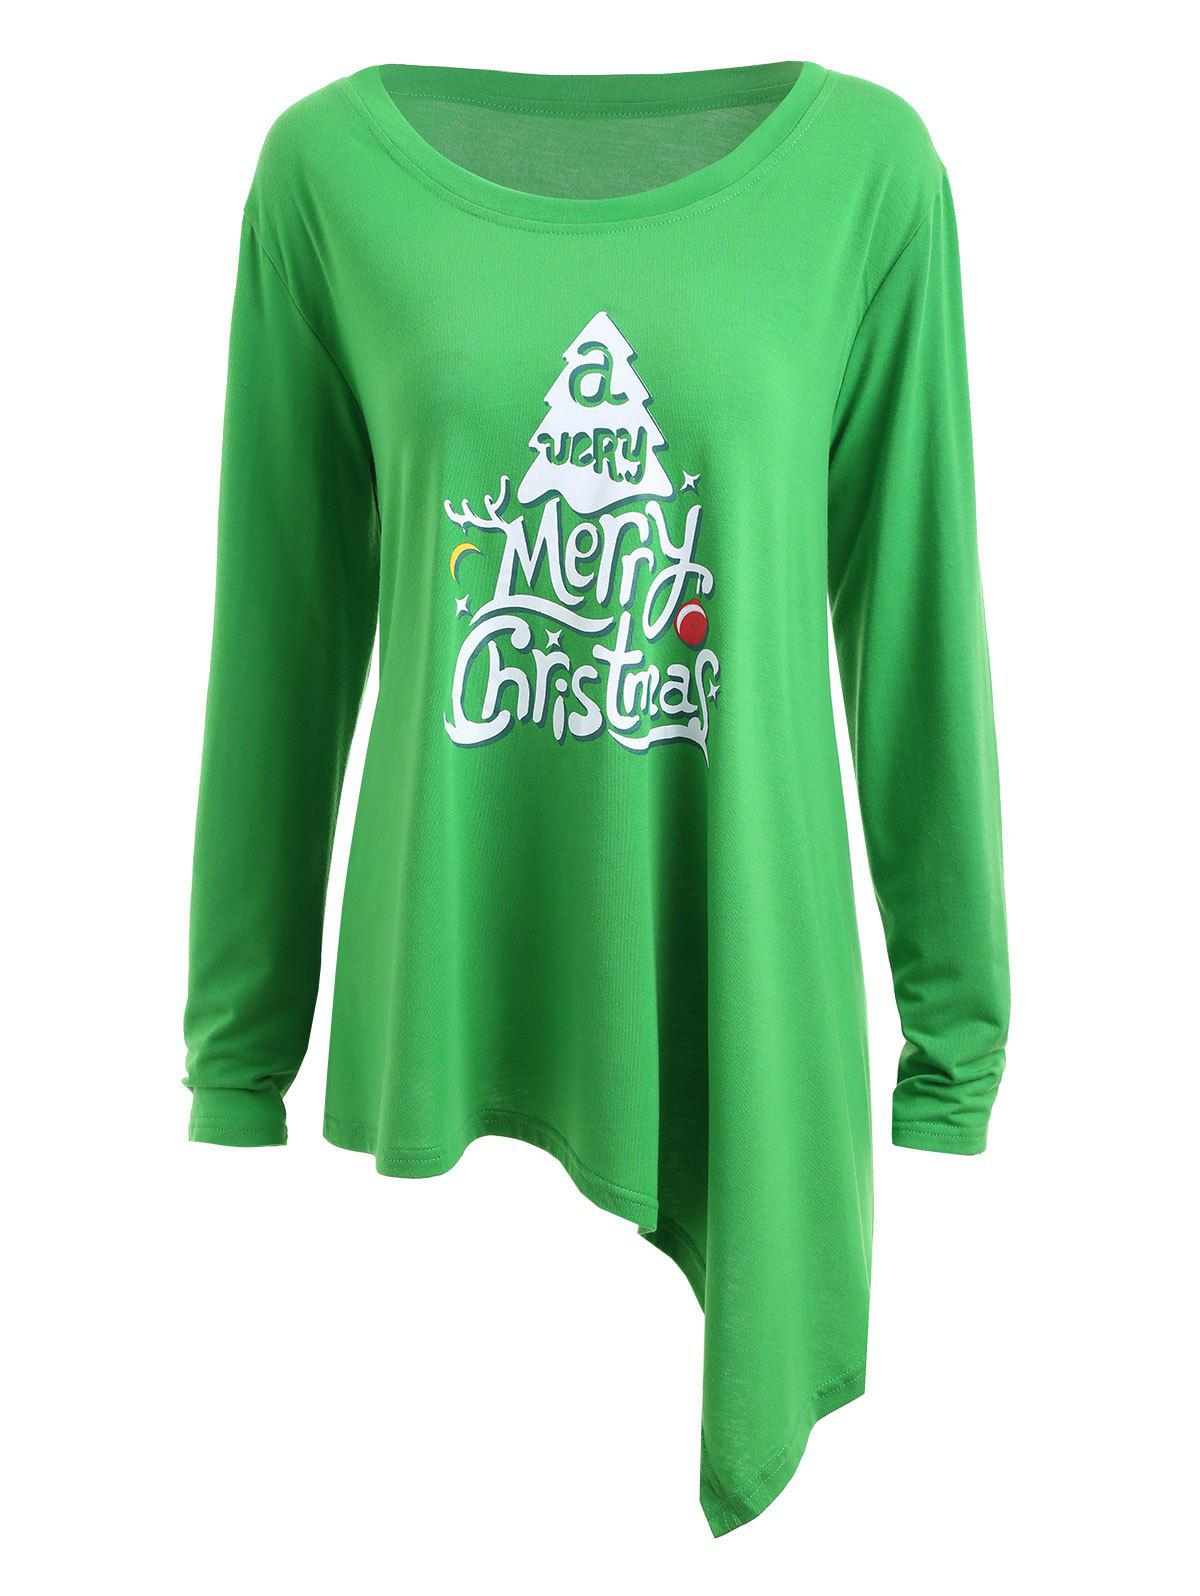 Plus Size Merry Christmas  Asymmetric Long Sleeve T-shirtWOMEN<br><br>Size: 3XL; Color: GREEN; Material: Cotton Blends,Polyester; Shirt Length: Long; Sleeve Length: Full; Collar: Scoop Neck; Style: Fashion; Season: Fall,Winter; Pattern Type: Letter; Weight: 0.3100kg; Package Contents: 1 x Tee;